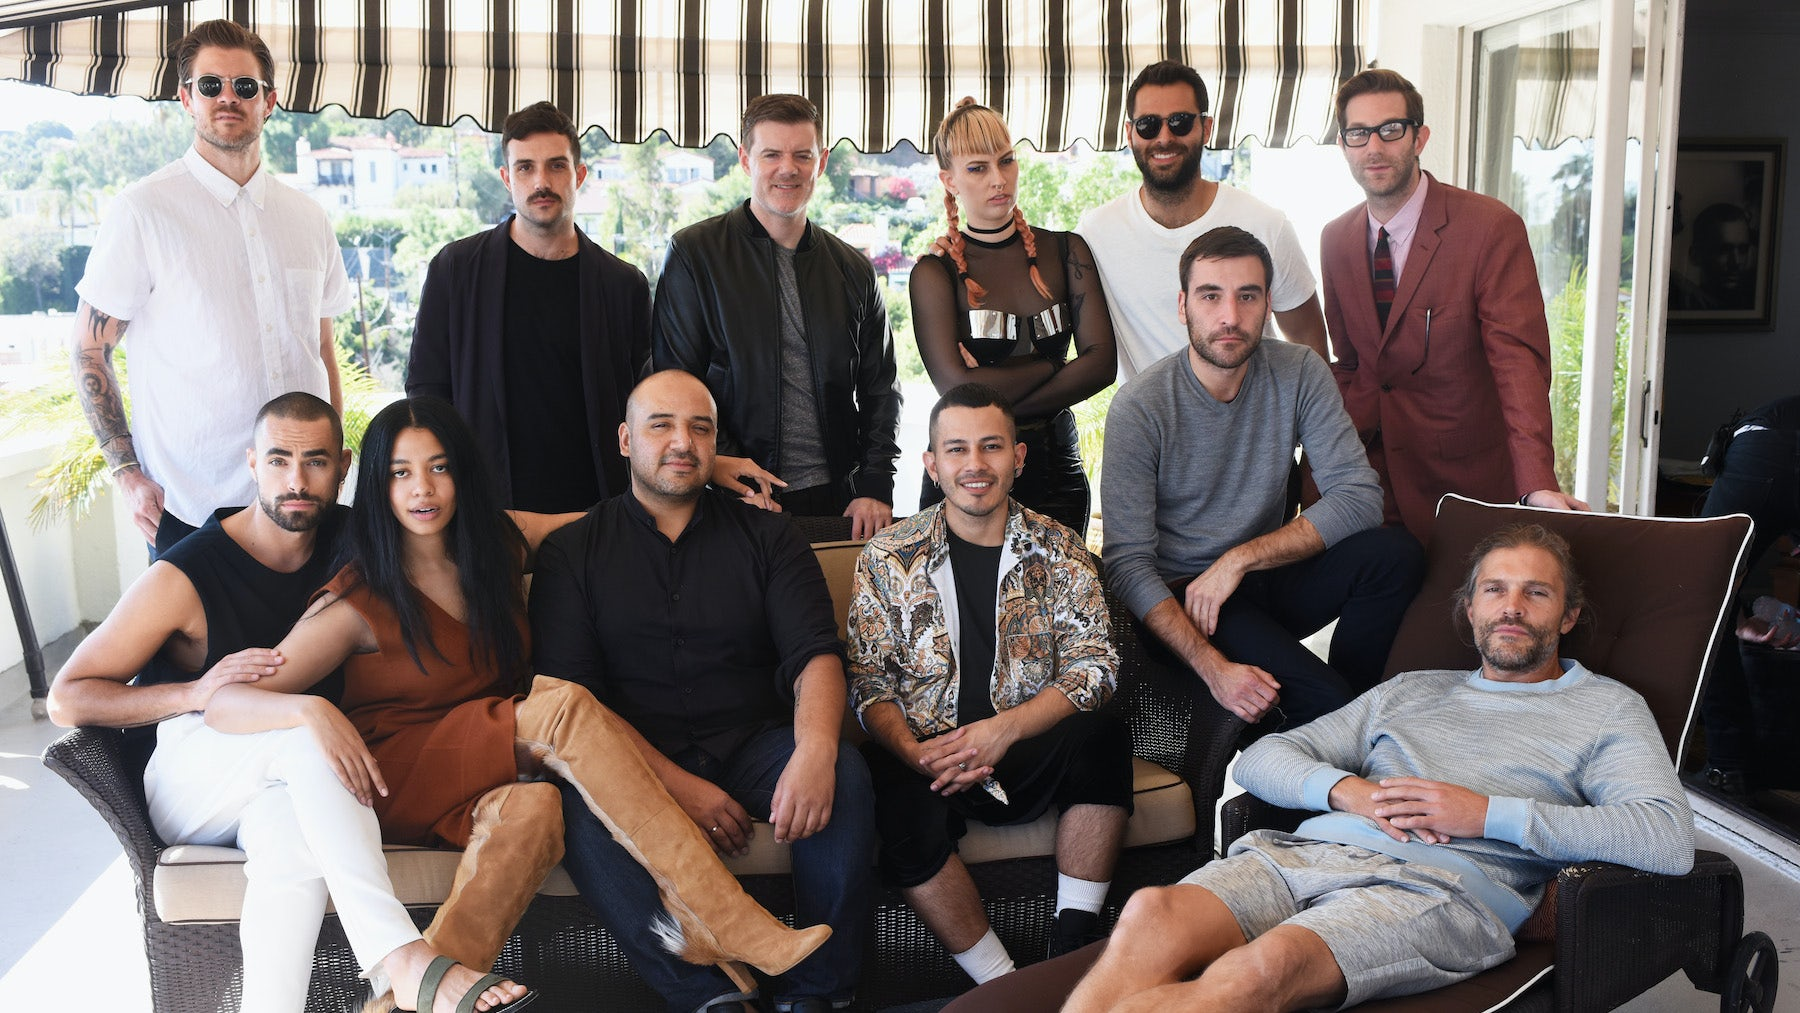 CFDA/Vogue Fashion Fund Finalists | Photo by Jeff Vespa/Getty